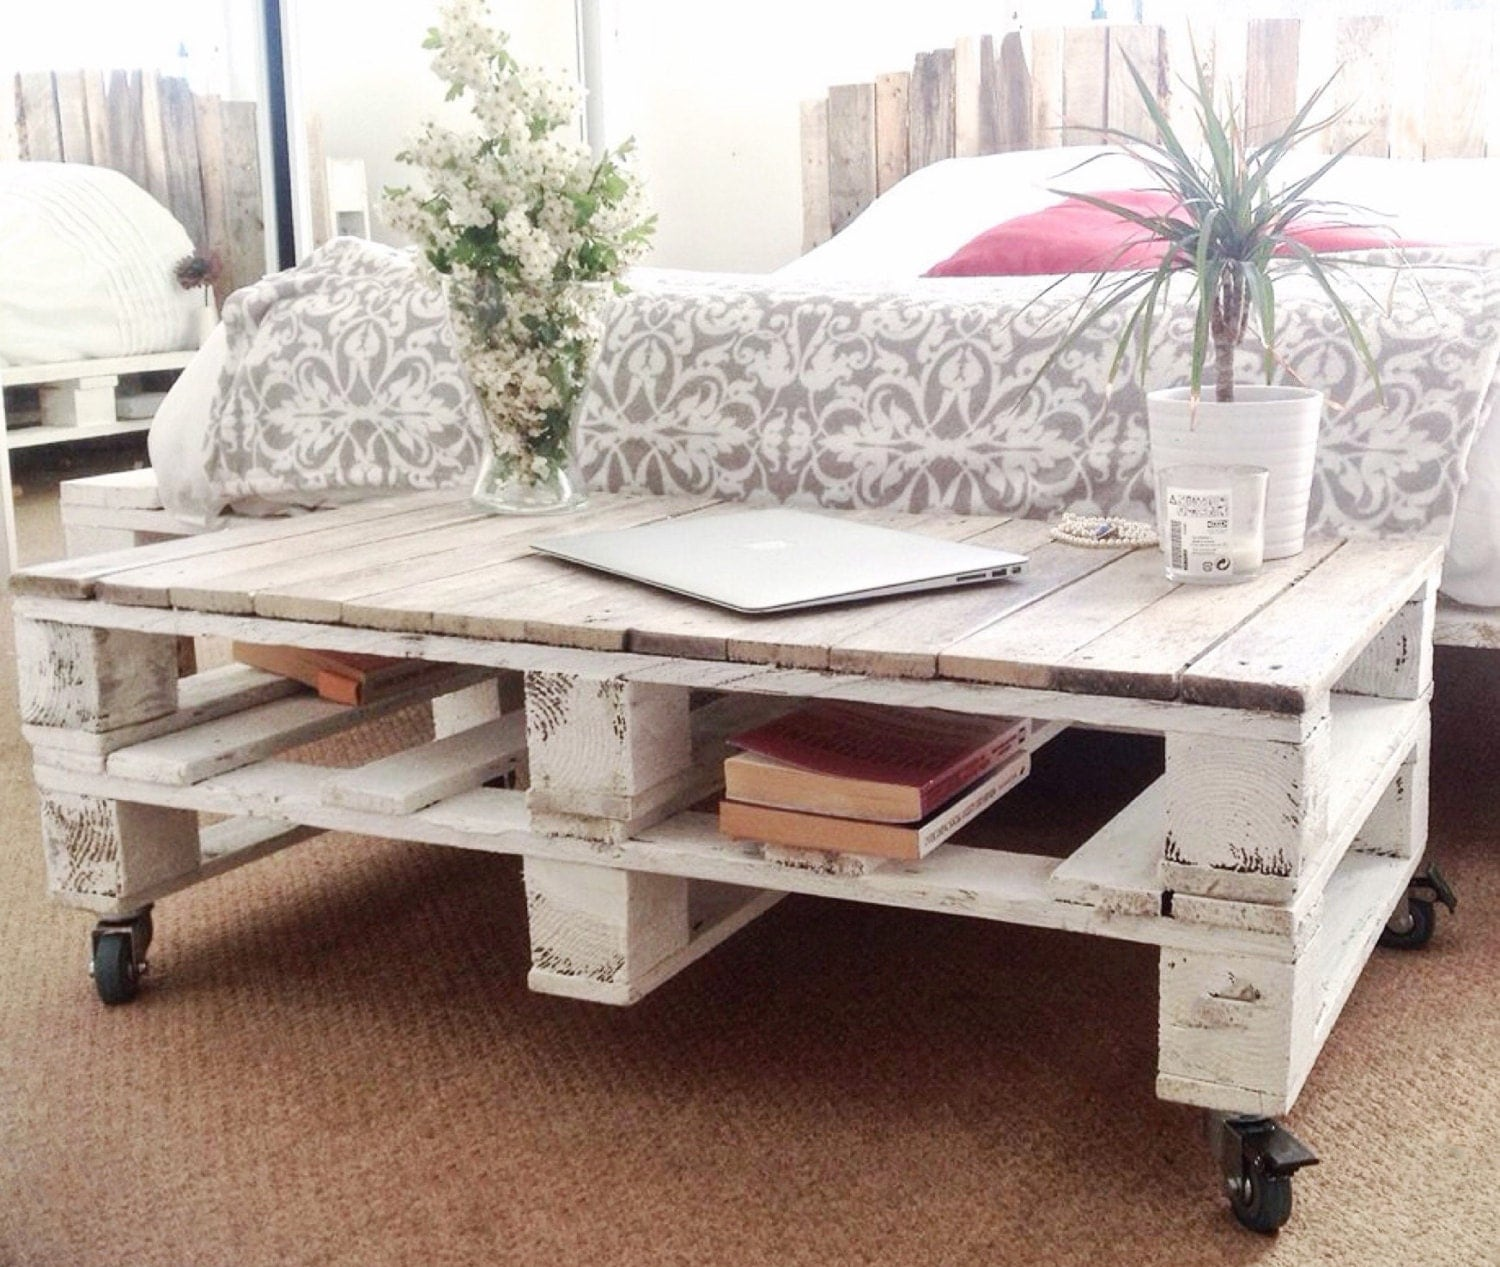 Pallet Coffee Table Esma In Farmhouse Style With Castor Wheels